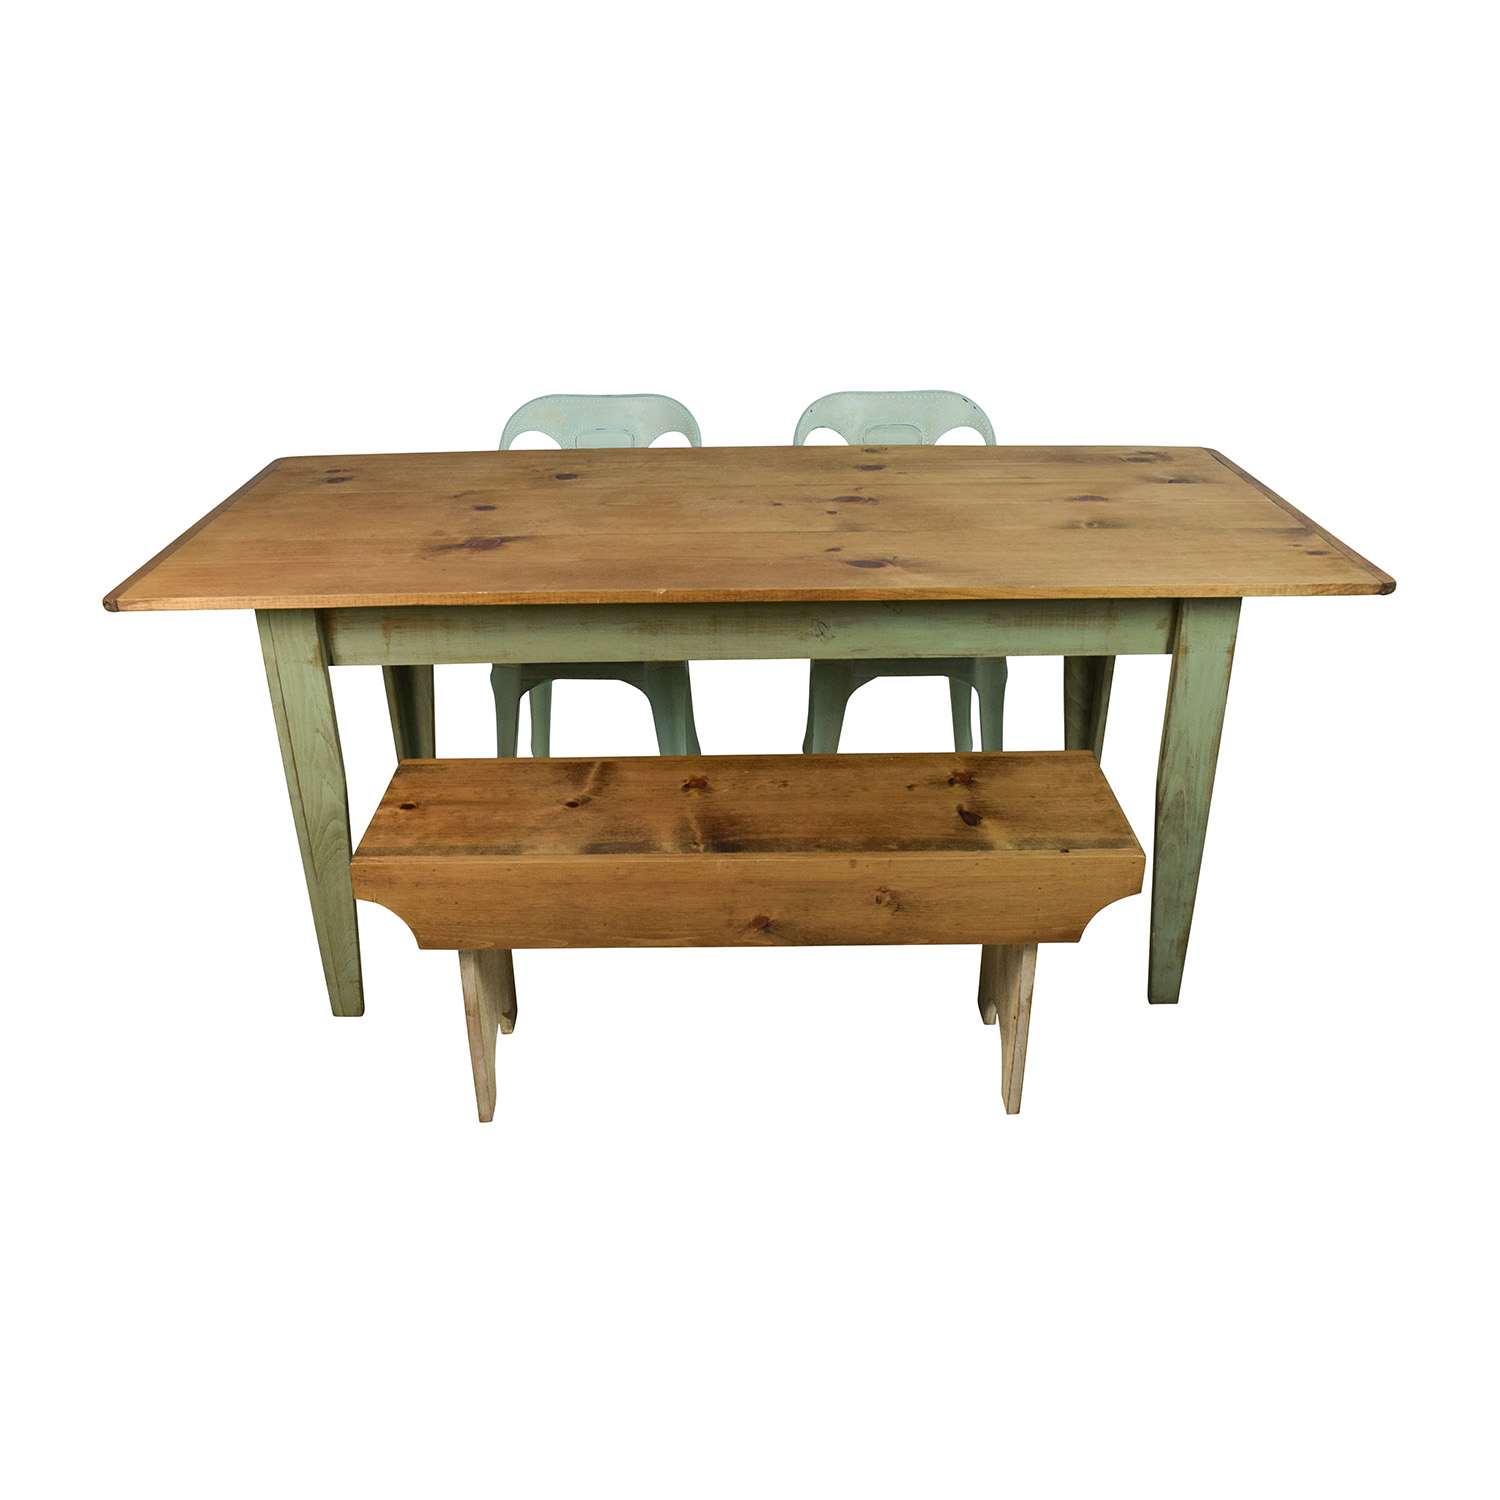 buy Urban Outfitters Rustic Farm Table with Bench and Chairs Wayfair and Urban Outfitters